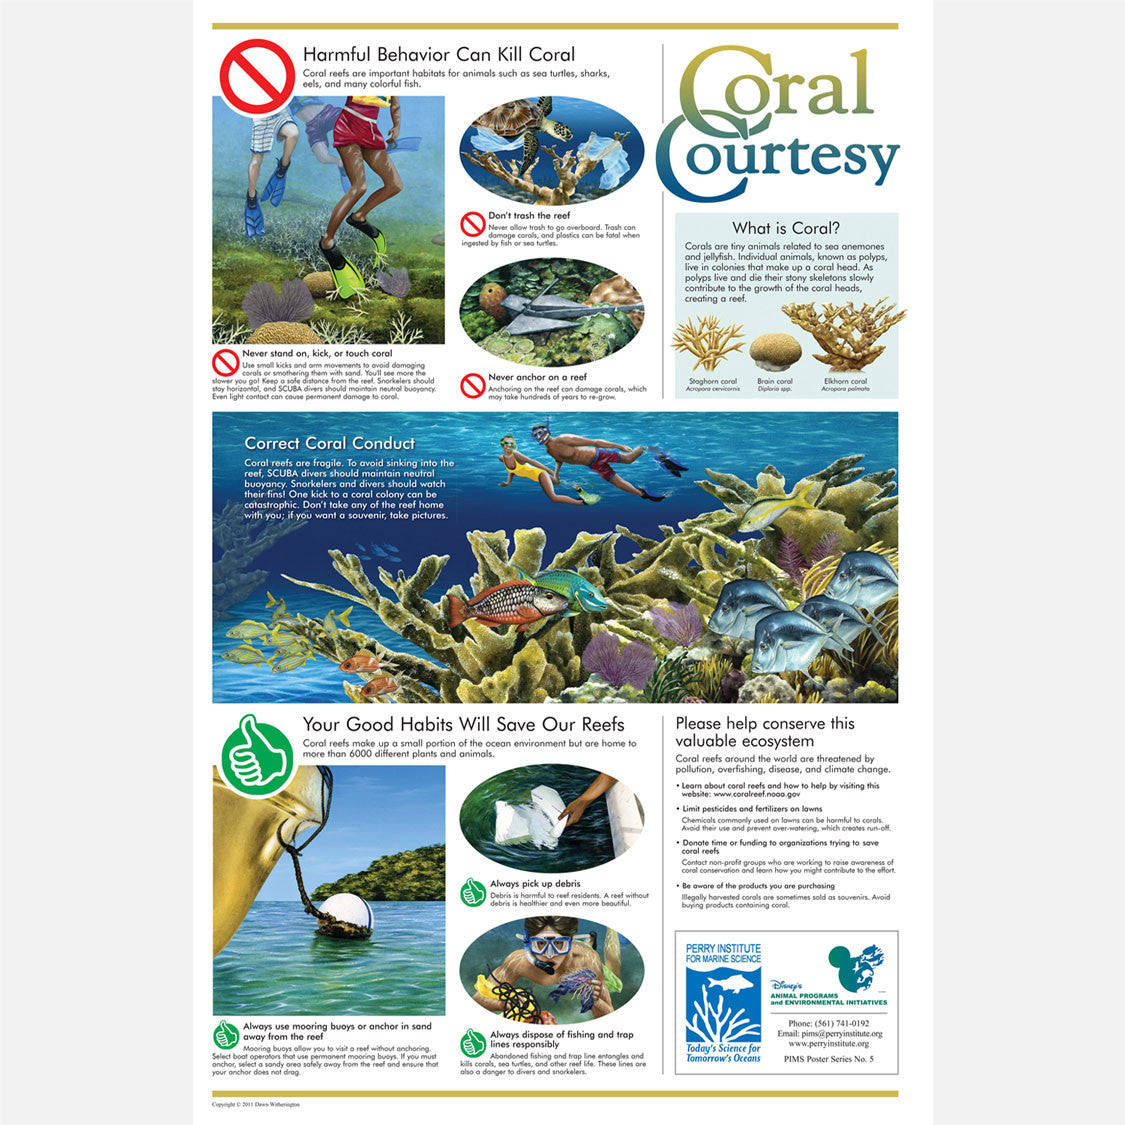 This beautiful poster provides information on the value of corals and the harmful effects human activity can have on them.